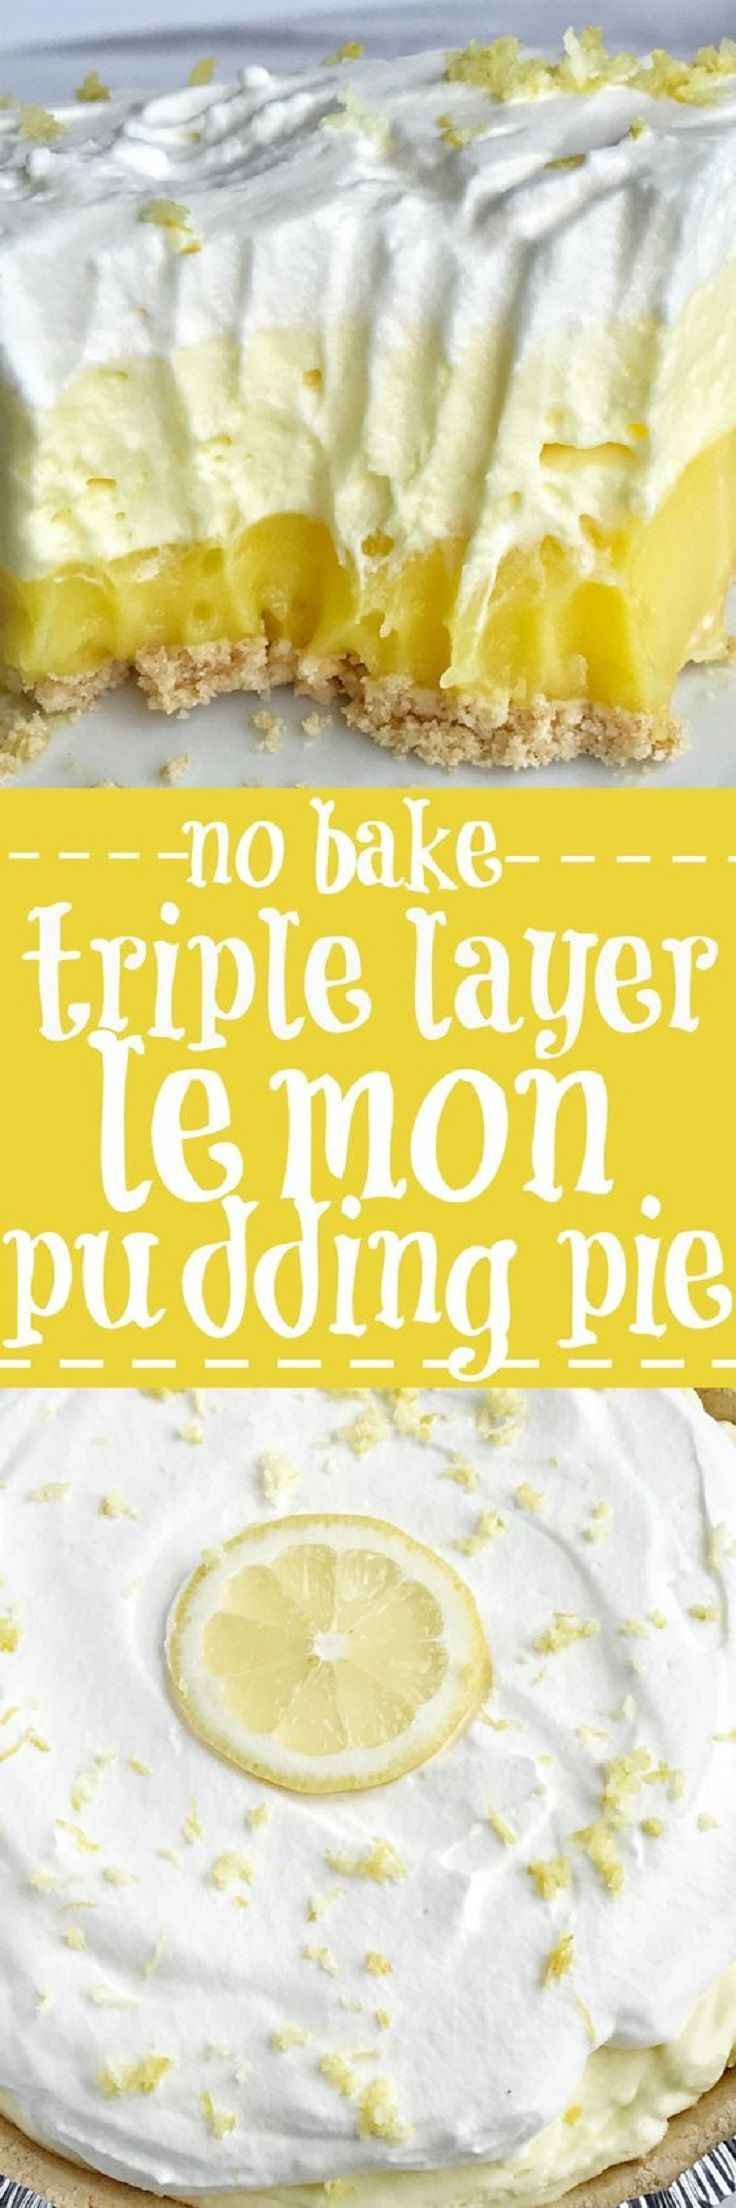 No Bake Triple Layer Lemon Pudding Pie - 14 Sublime Lemon Desserts for a Real Sweet Revolution in Your Home